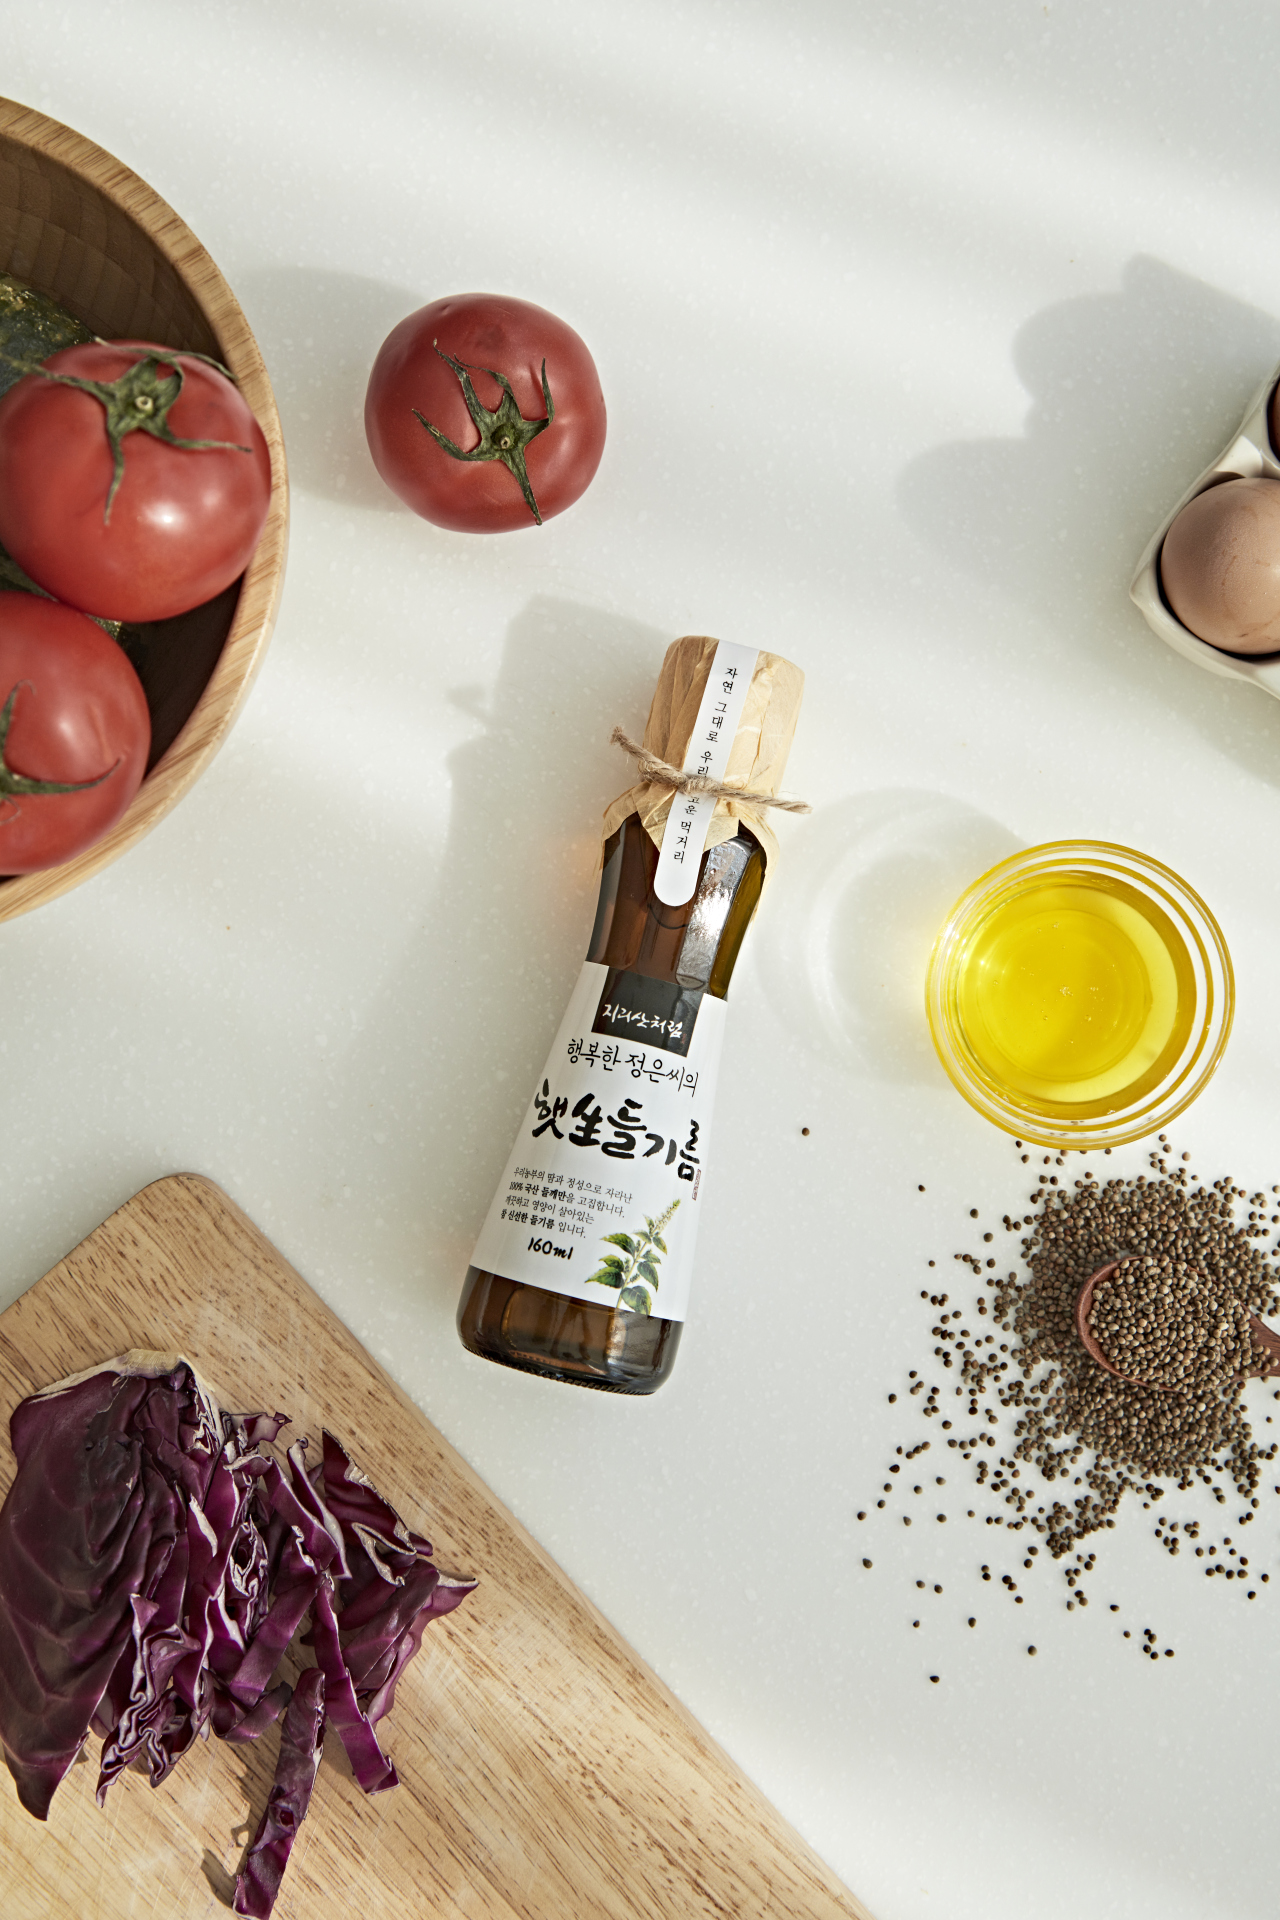 A taste of Chung's fresh perilla oil unveils a very delicate, nutty, fragrant flavor profile with a satiny mouthfeel and a light golden hue (Photo credit: Jirisan Cheorum)